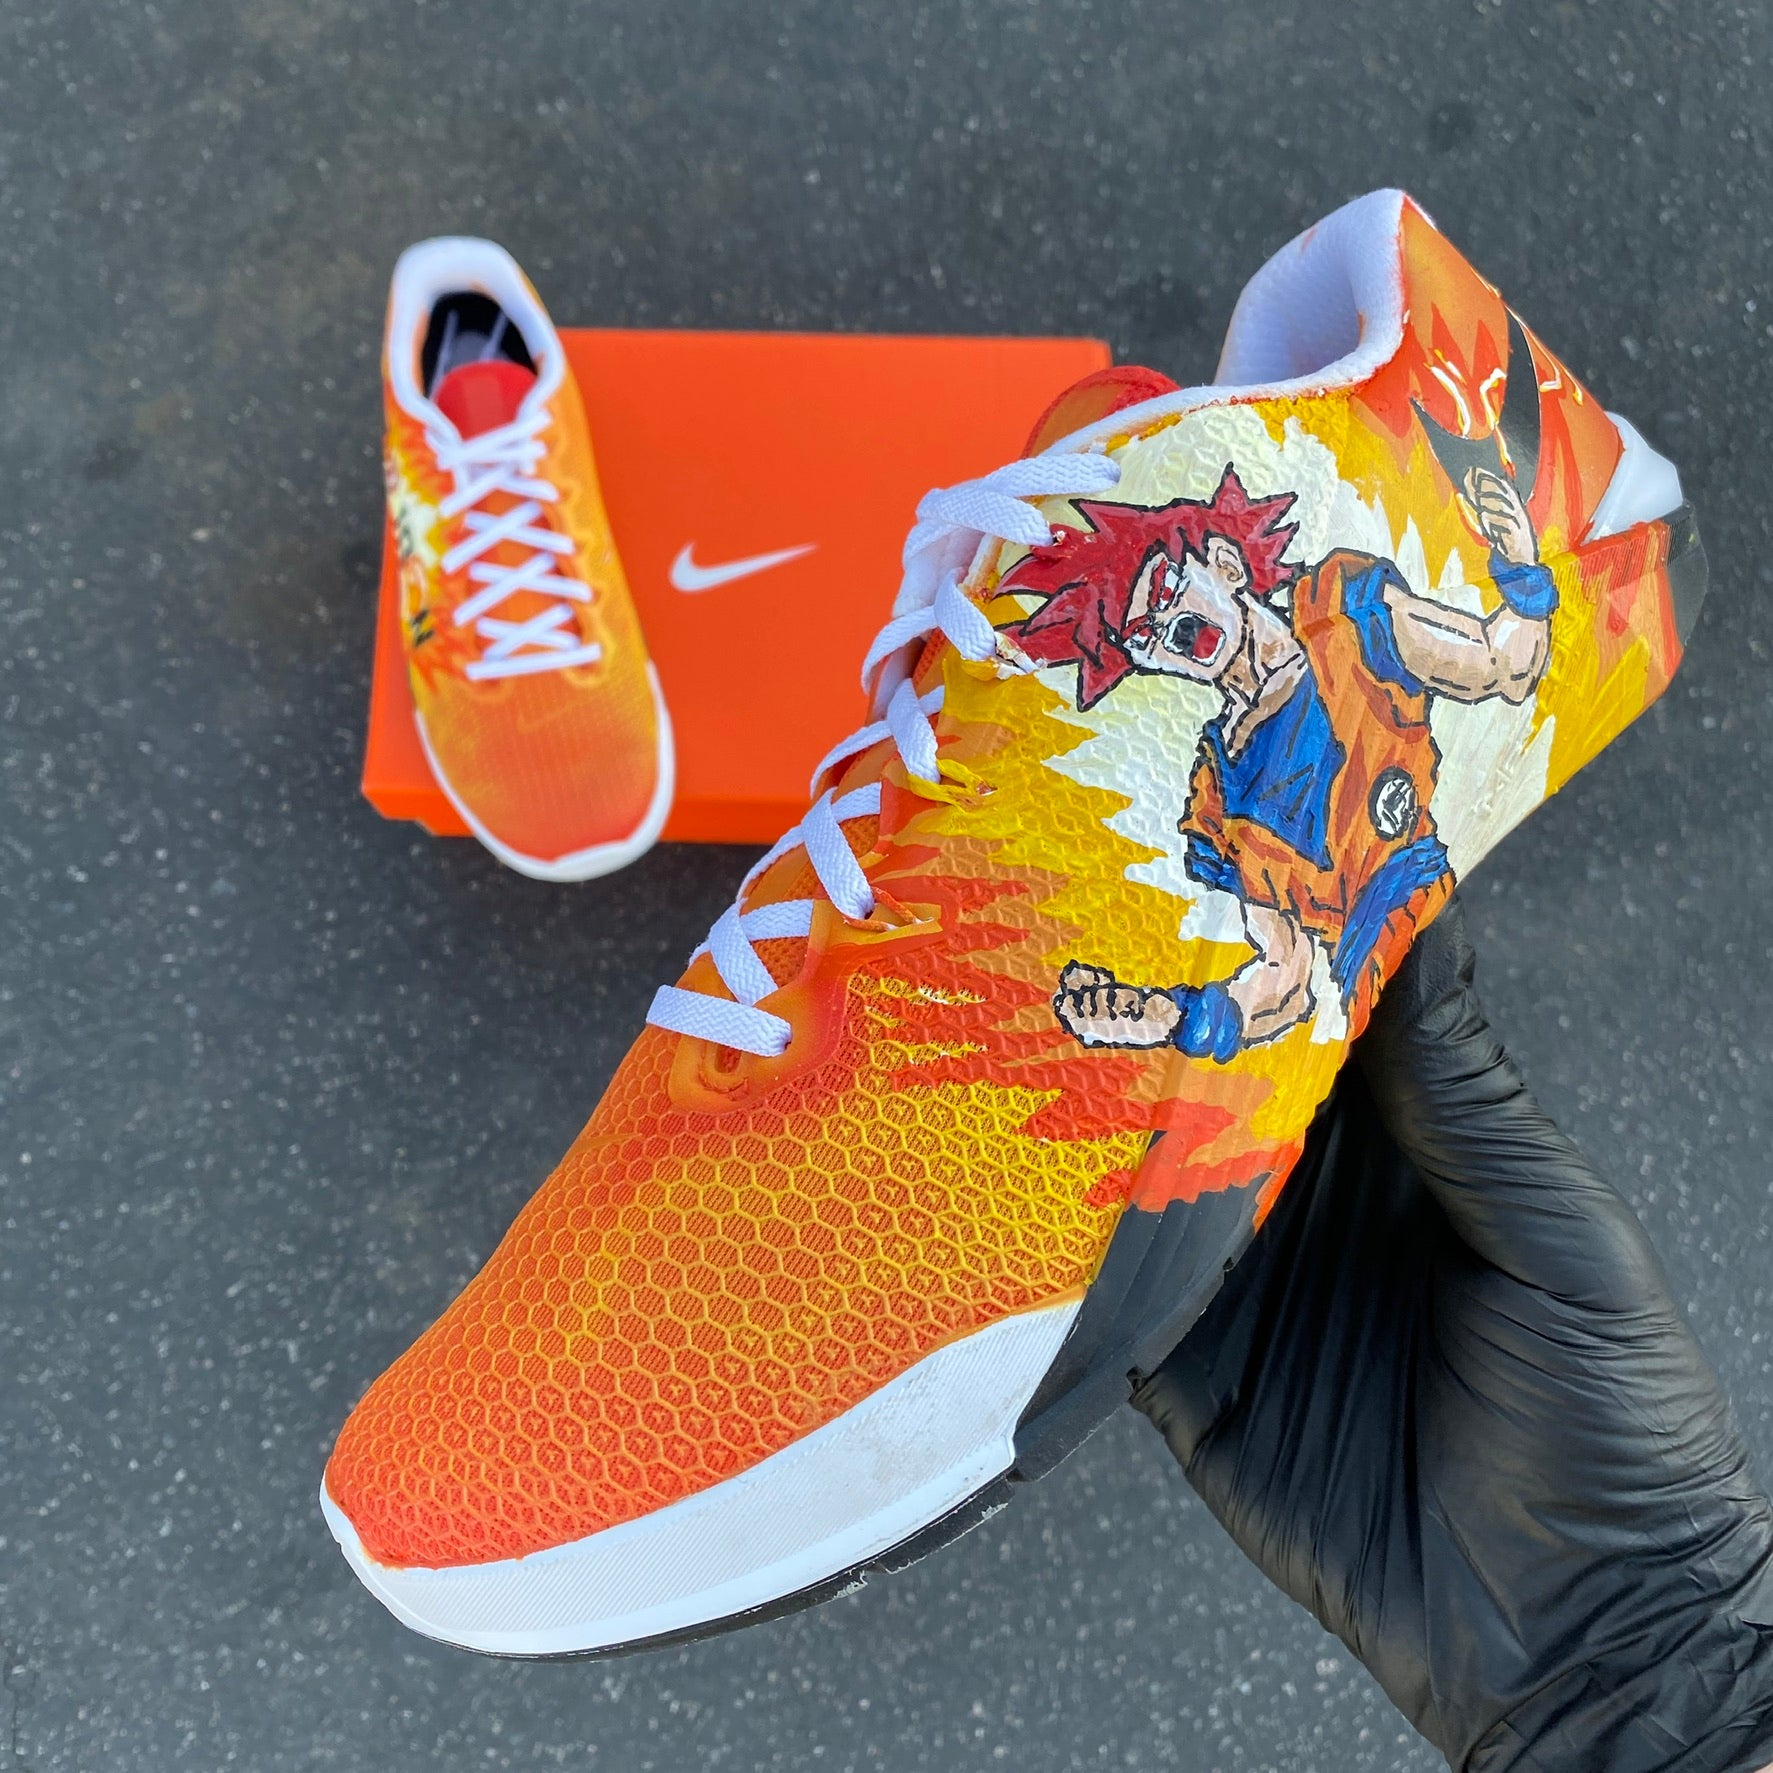 Goku Nike Shoes Top Sellers, UP TO 68% OFF